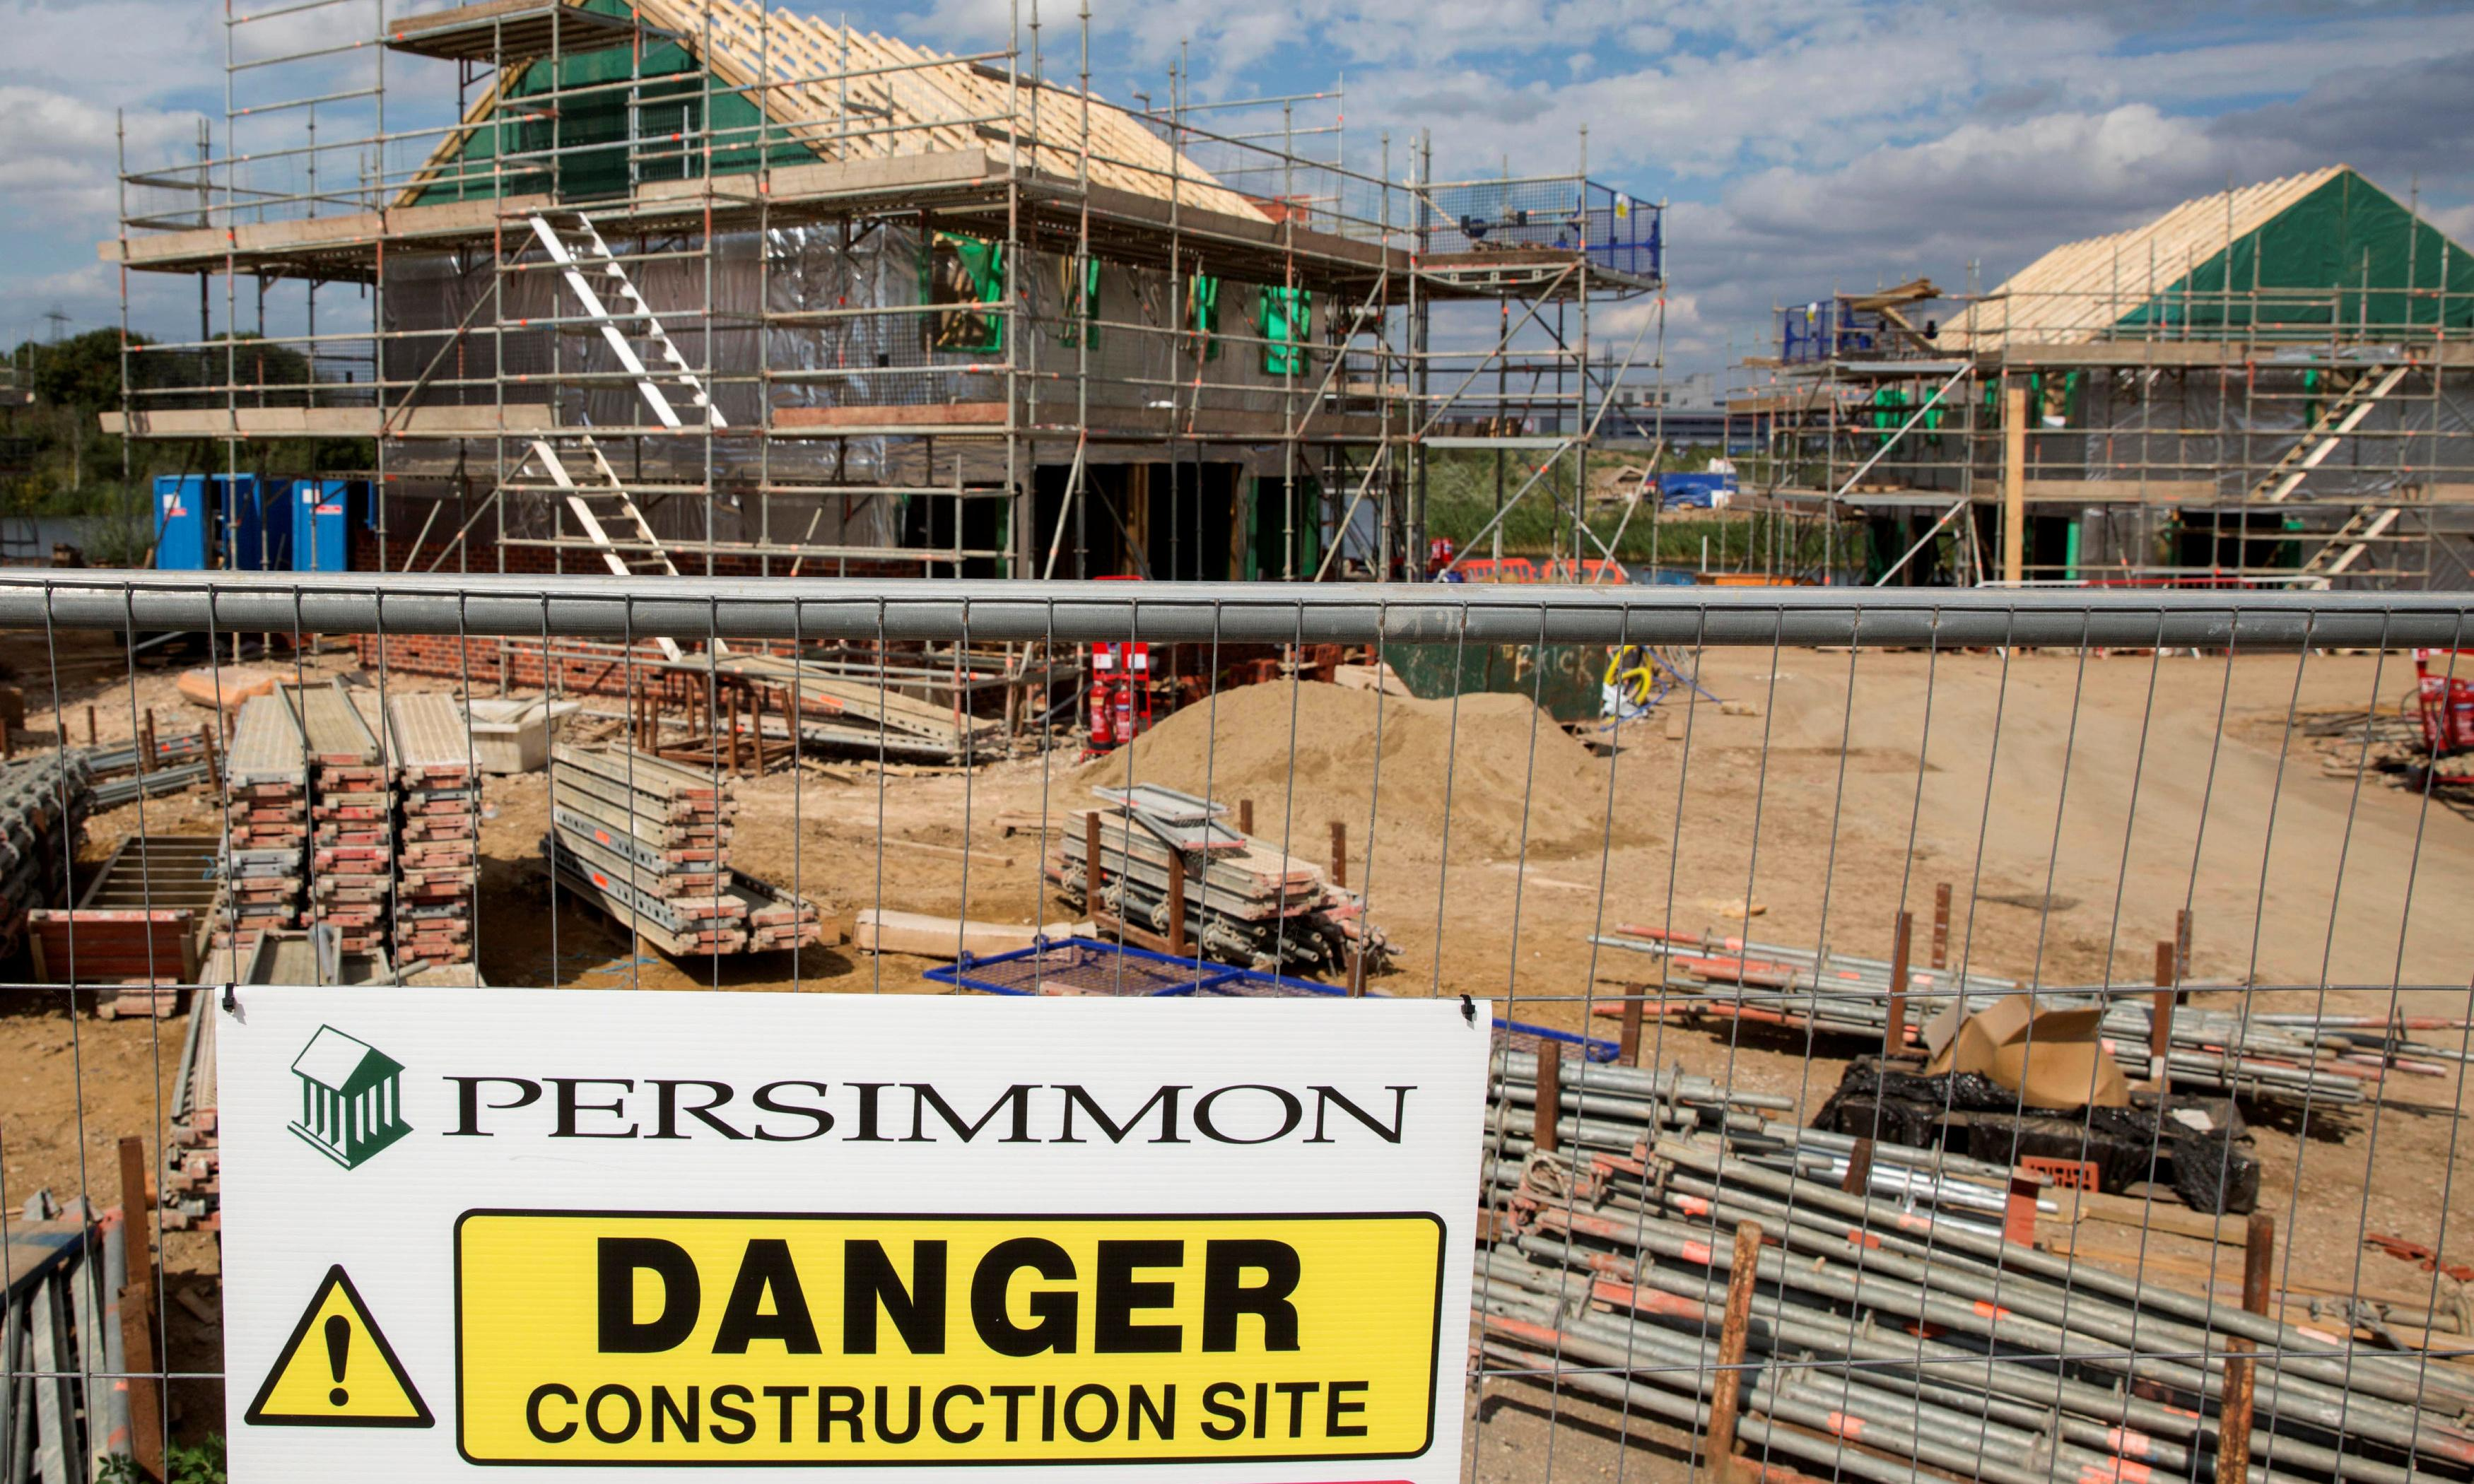 Persimmon tries to move itself on to firmer foundations